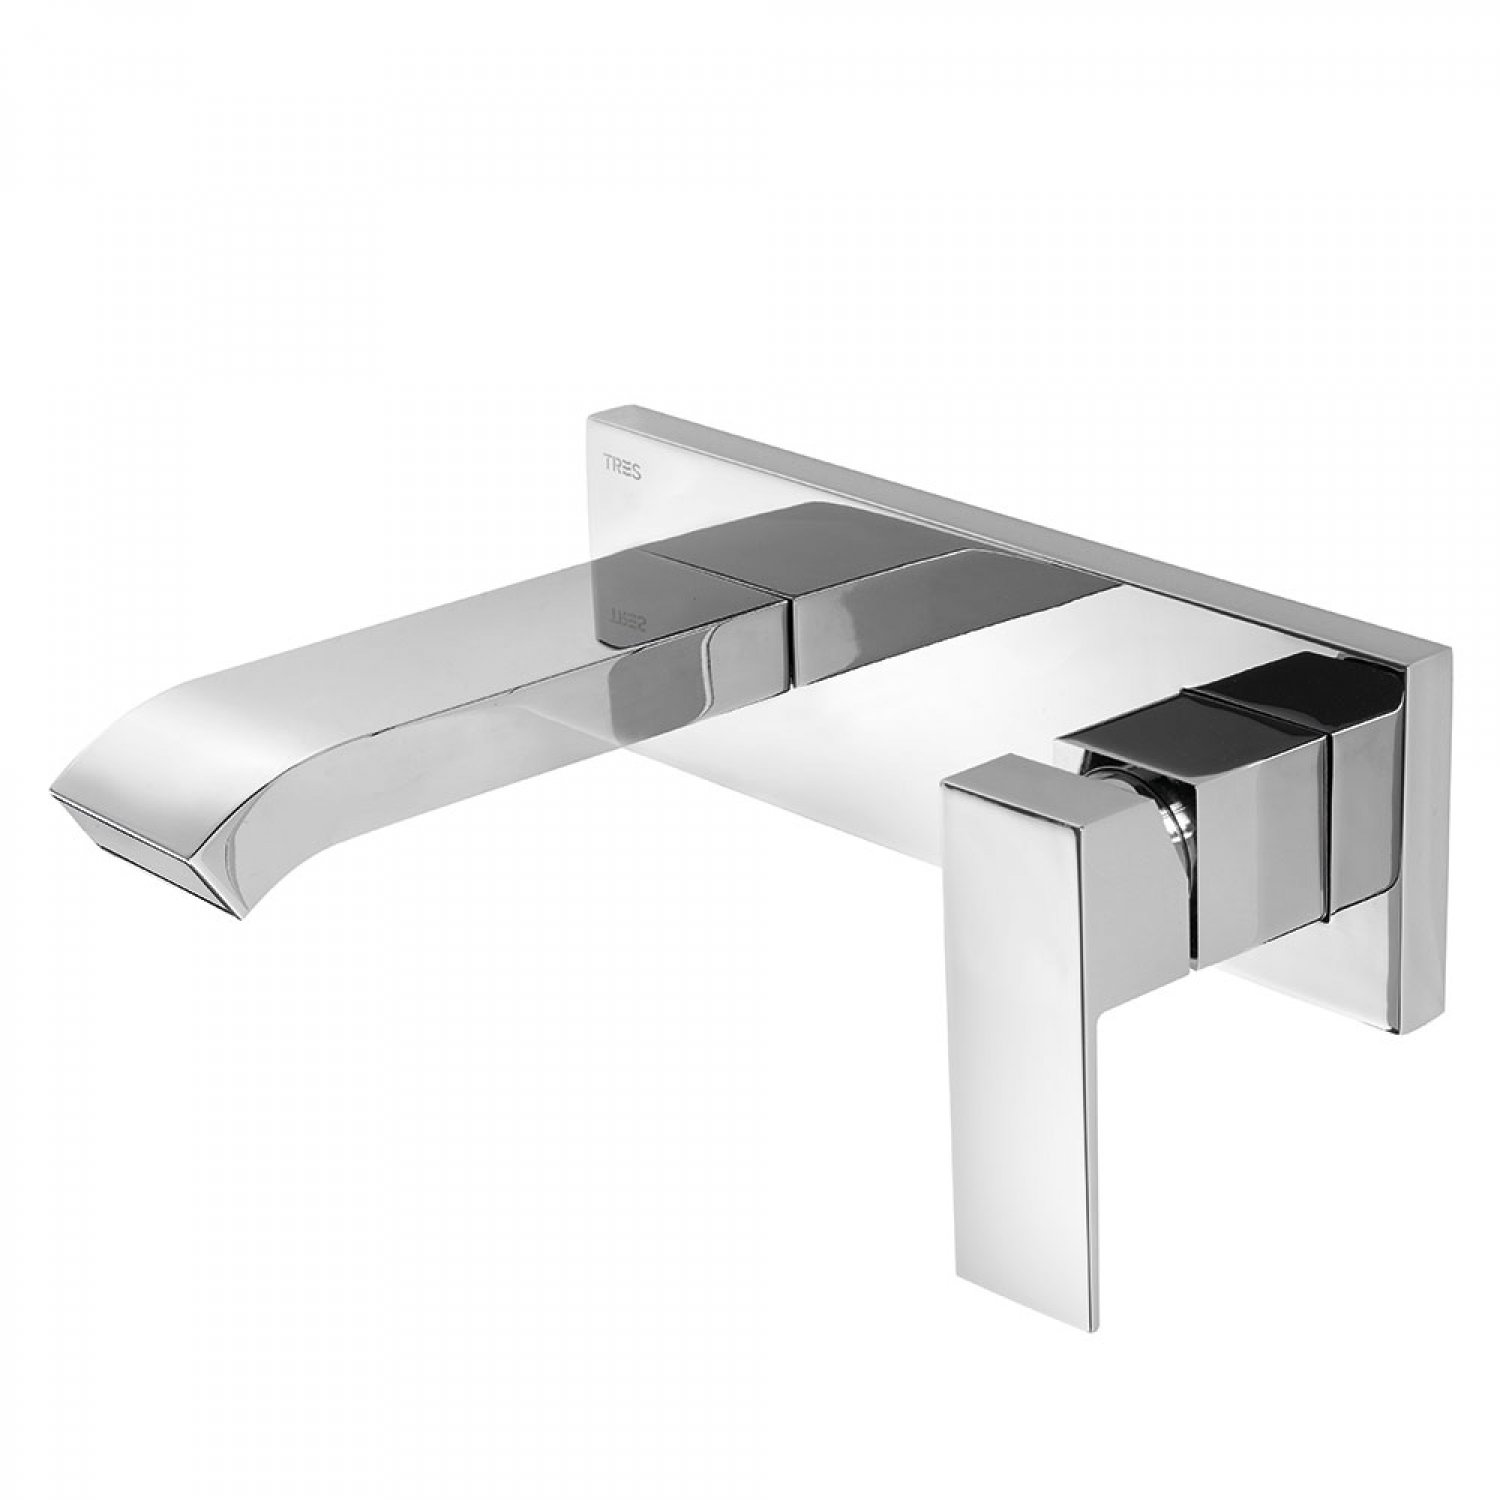 http://desidea.hu/wp-content/uploads/2019/07/Single-lever-wall-washbasin-mixer-00626001.jpg